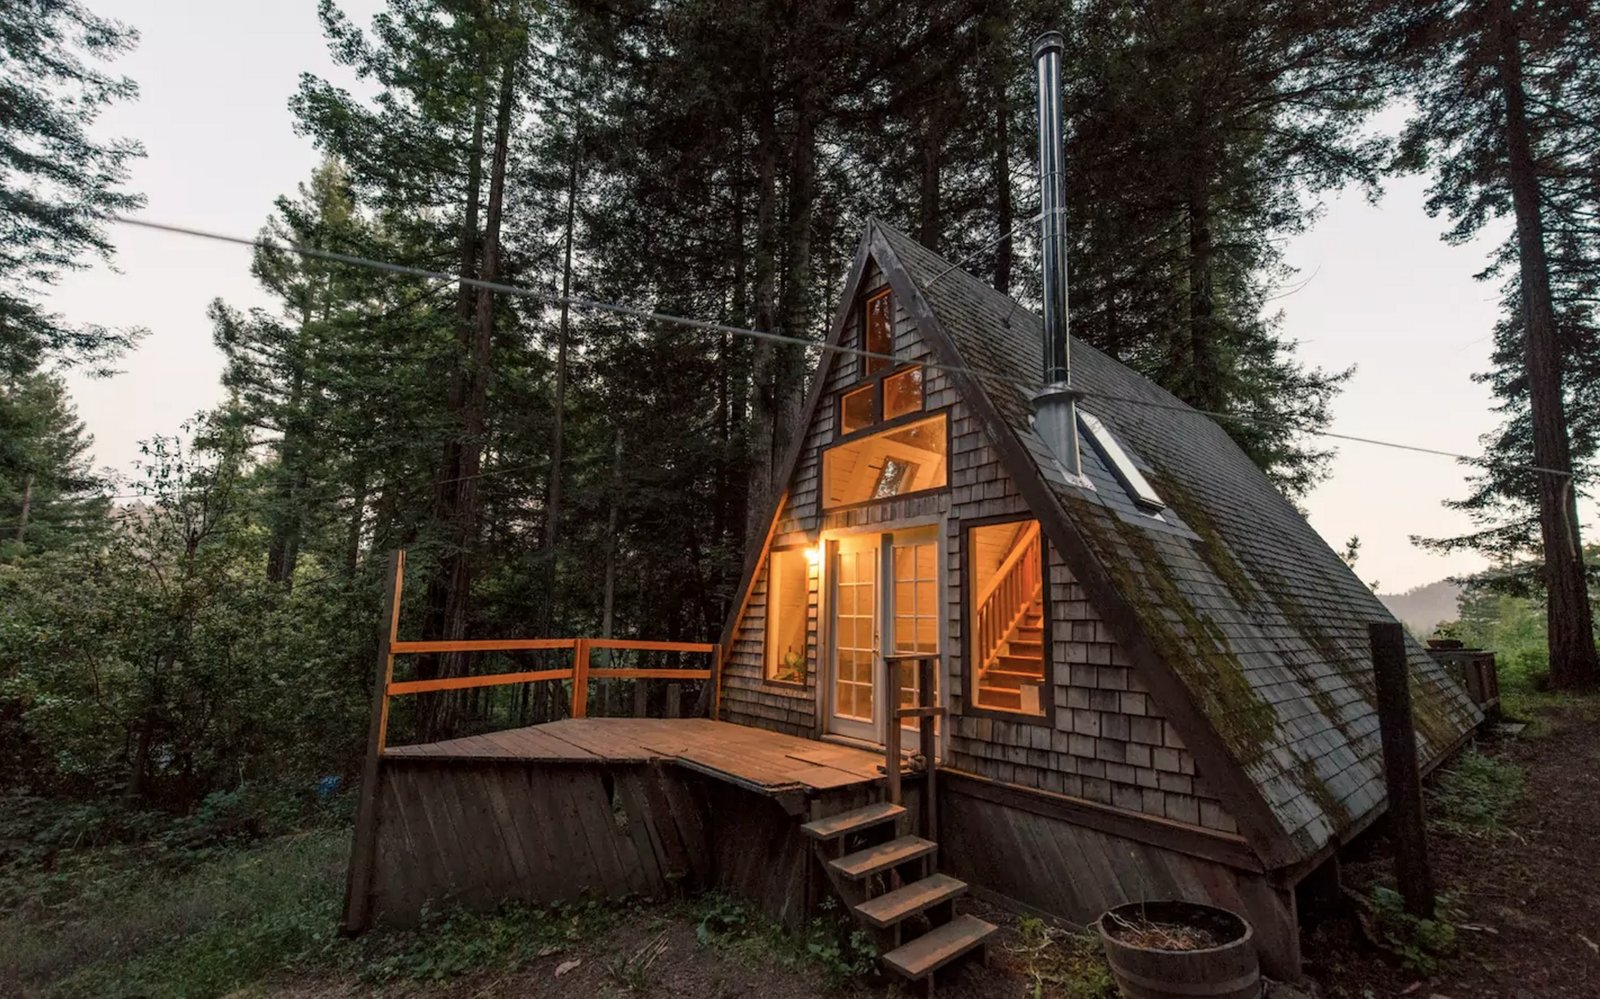 Exterior, Cabin Building Type, A-Frame RoofLine, Wood Siding Material, and Shingles Roof Material Cozy A-Frame Cabin in the Redwoods  https://www.airbnb.com/rooms/2437969  Photo 2 of 11 in 11 Alluring A-Frame Homes You Can Rent Right Now from Travel